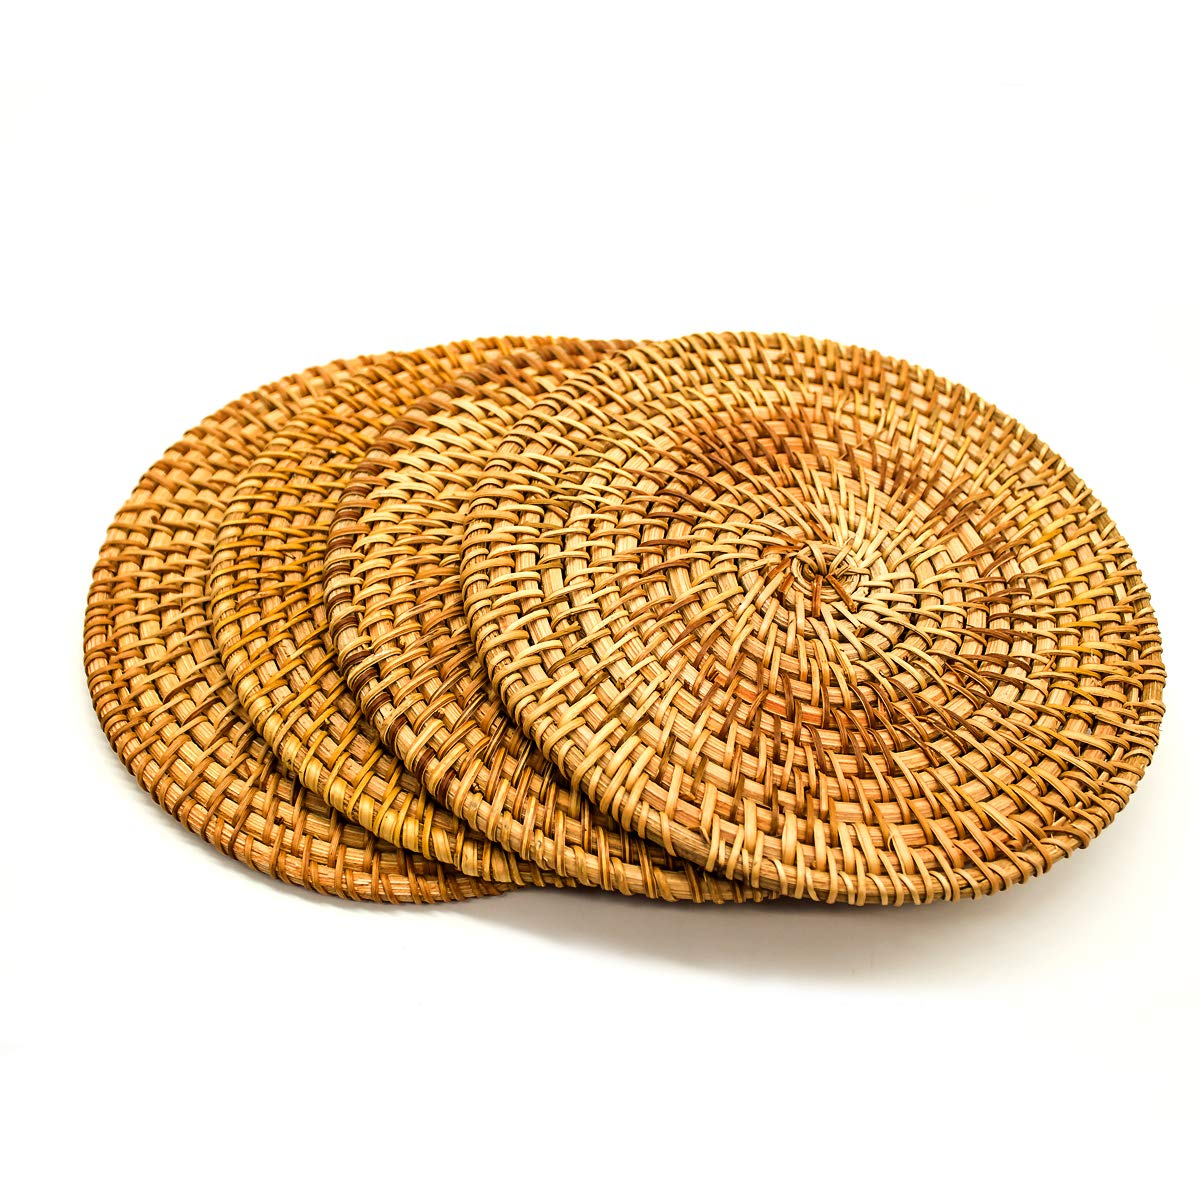 BeeHomee Trivets For Hot Dishes - Woven Rattan Trivets Hot Pads For Dinning Table,kitchen Heat Resistant Straw Dish Coasters Placemats Pot Holder (7.87 Inch) by BeeHomee